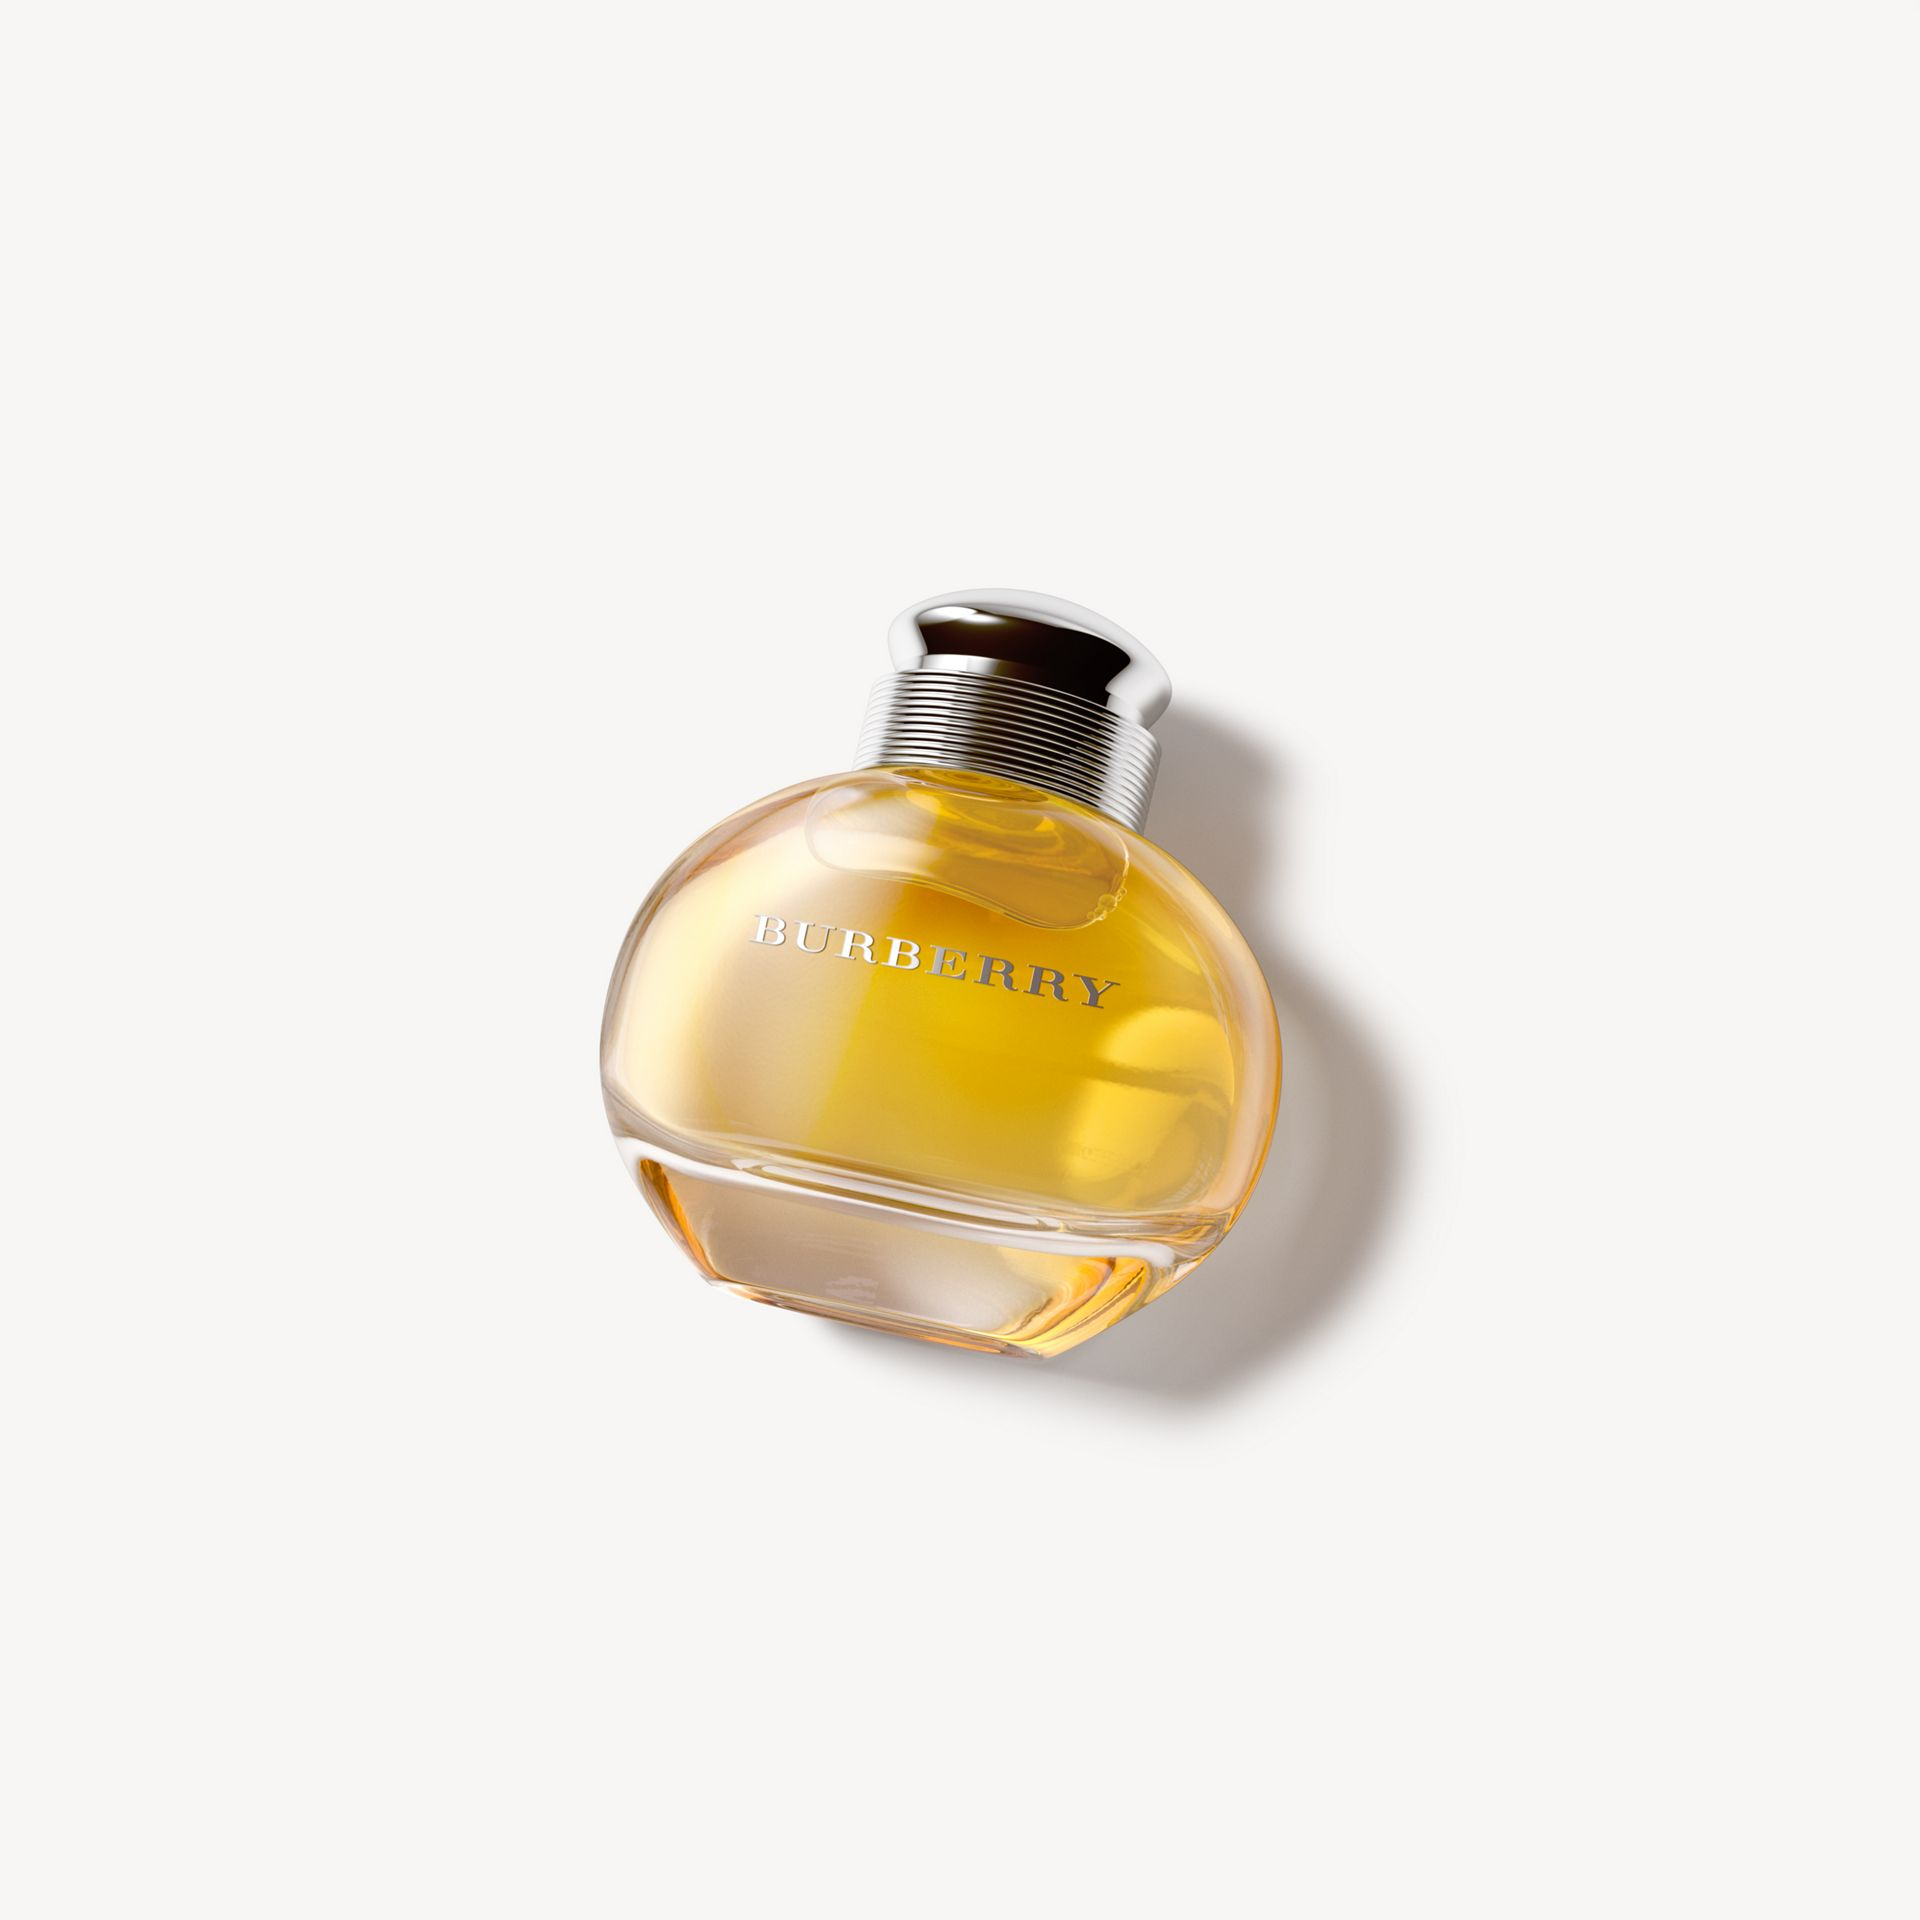 Burberry For Women Eau de Parfum 50 ml - photo de la galerie 1